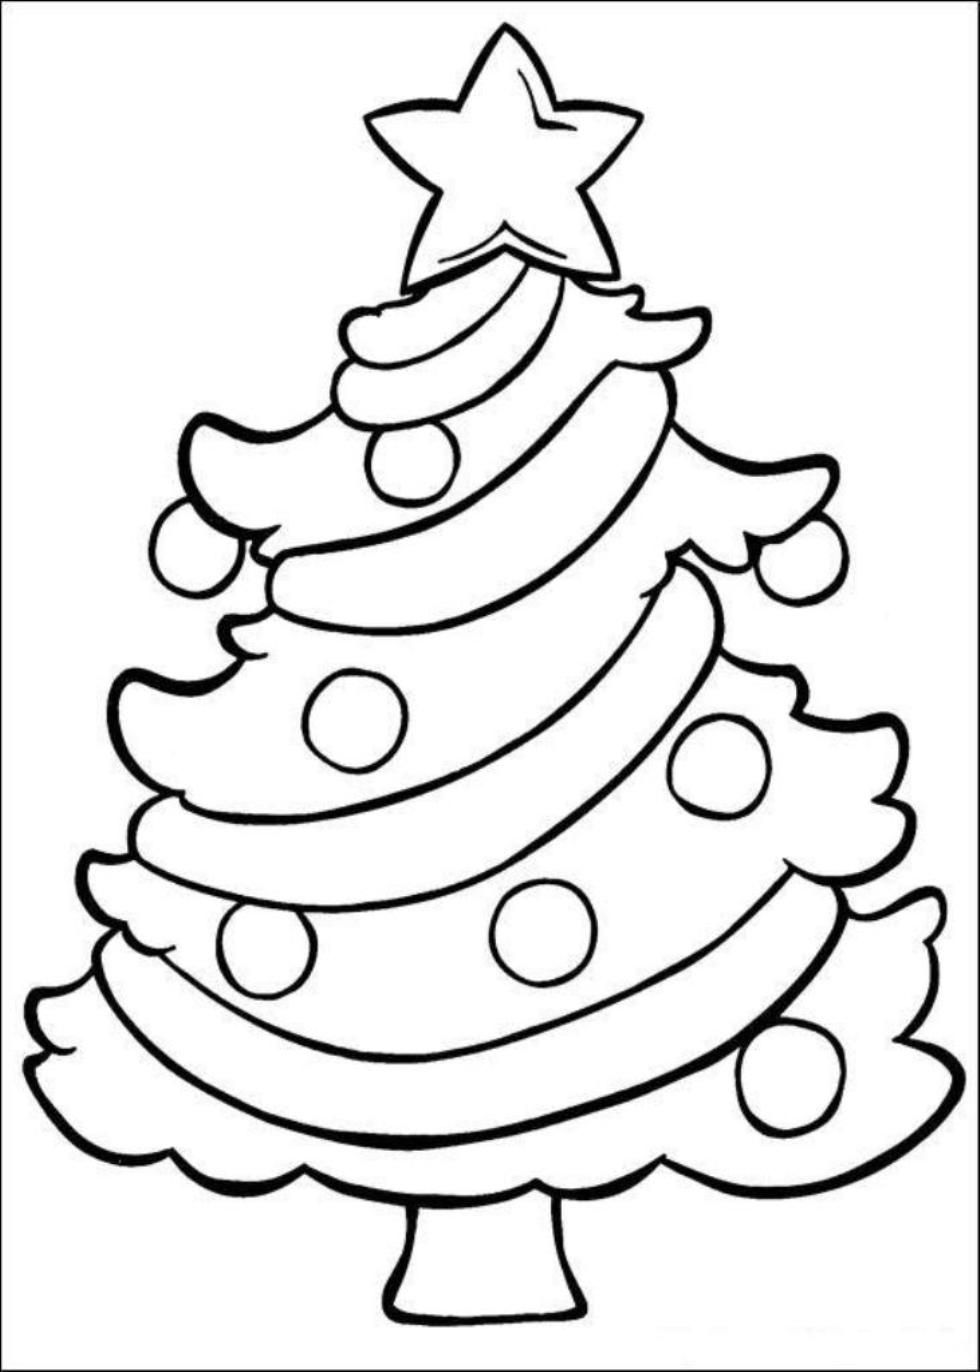 Free coloring pages for christmas printable - Christmas 174 Coloring Page For Kids And Adults From Cartoons Coloring Pages Christmas Coloring Pages Free Printable Coloring Image